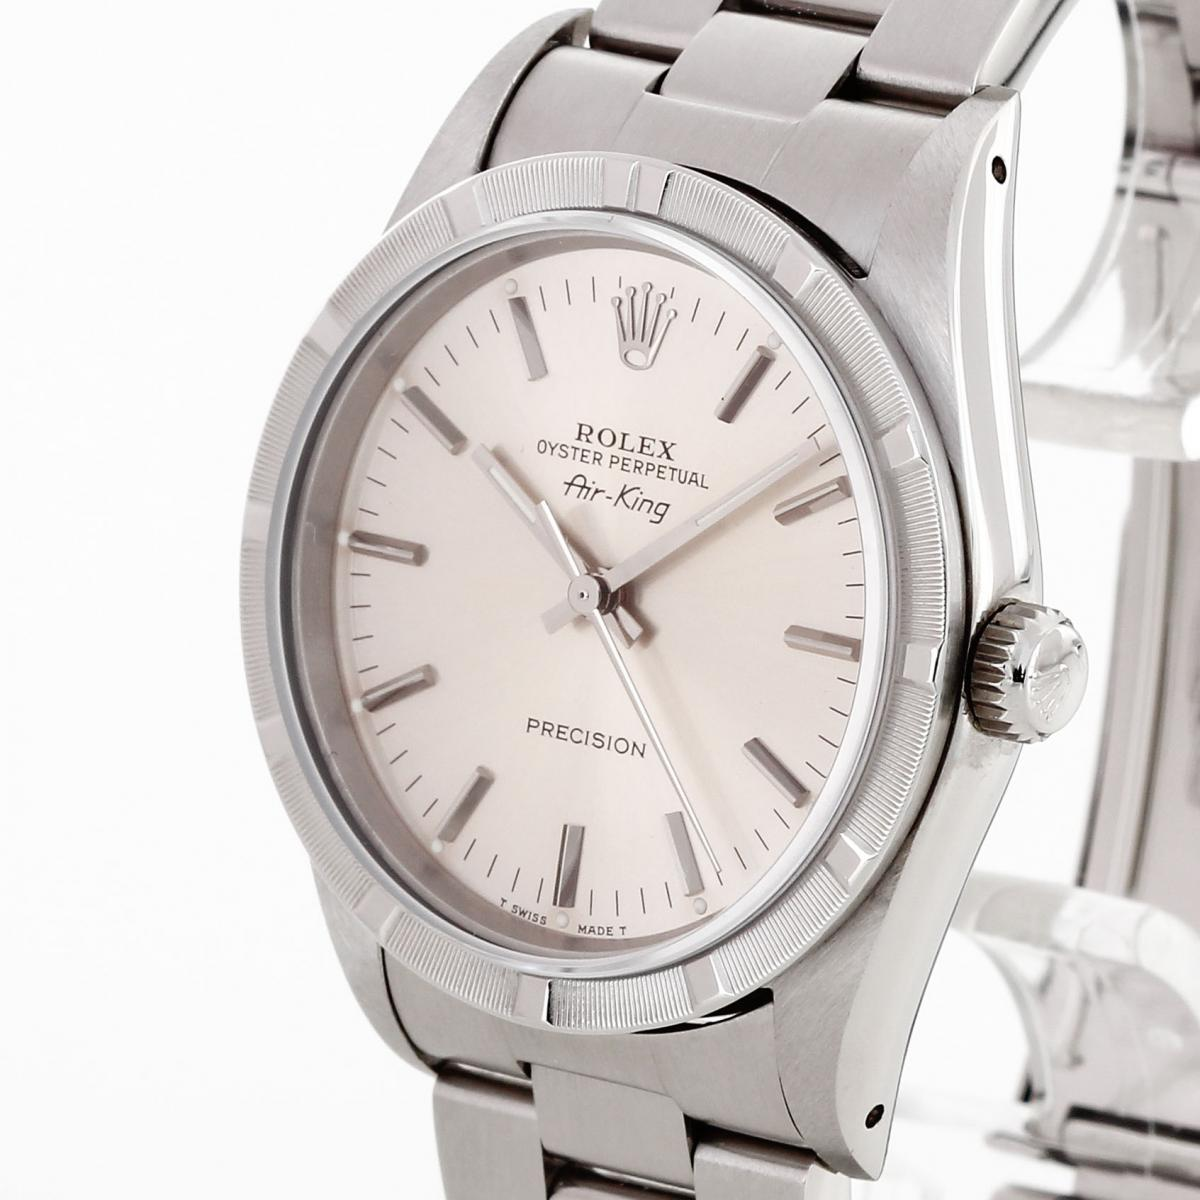 Rolex Oyster Perpetual Air King Ref 14010